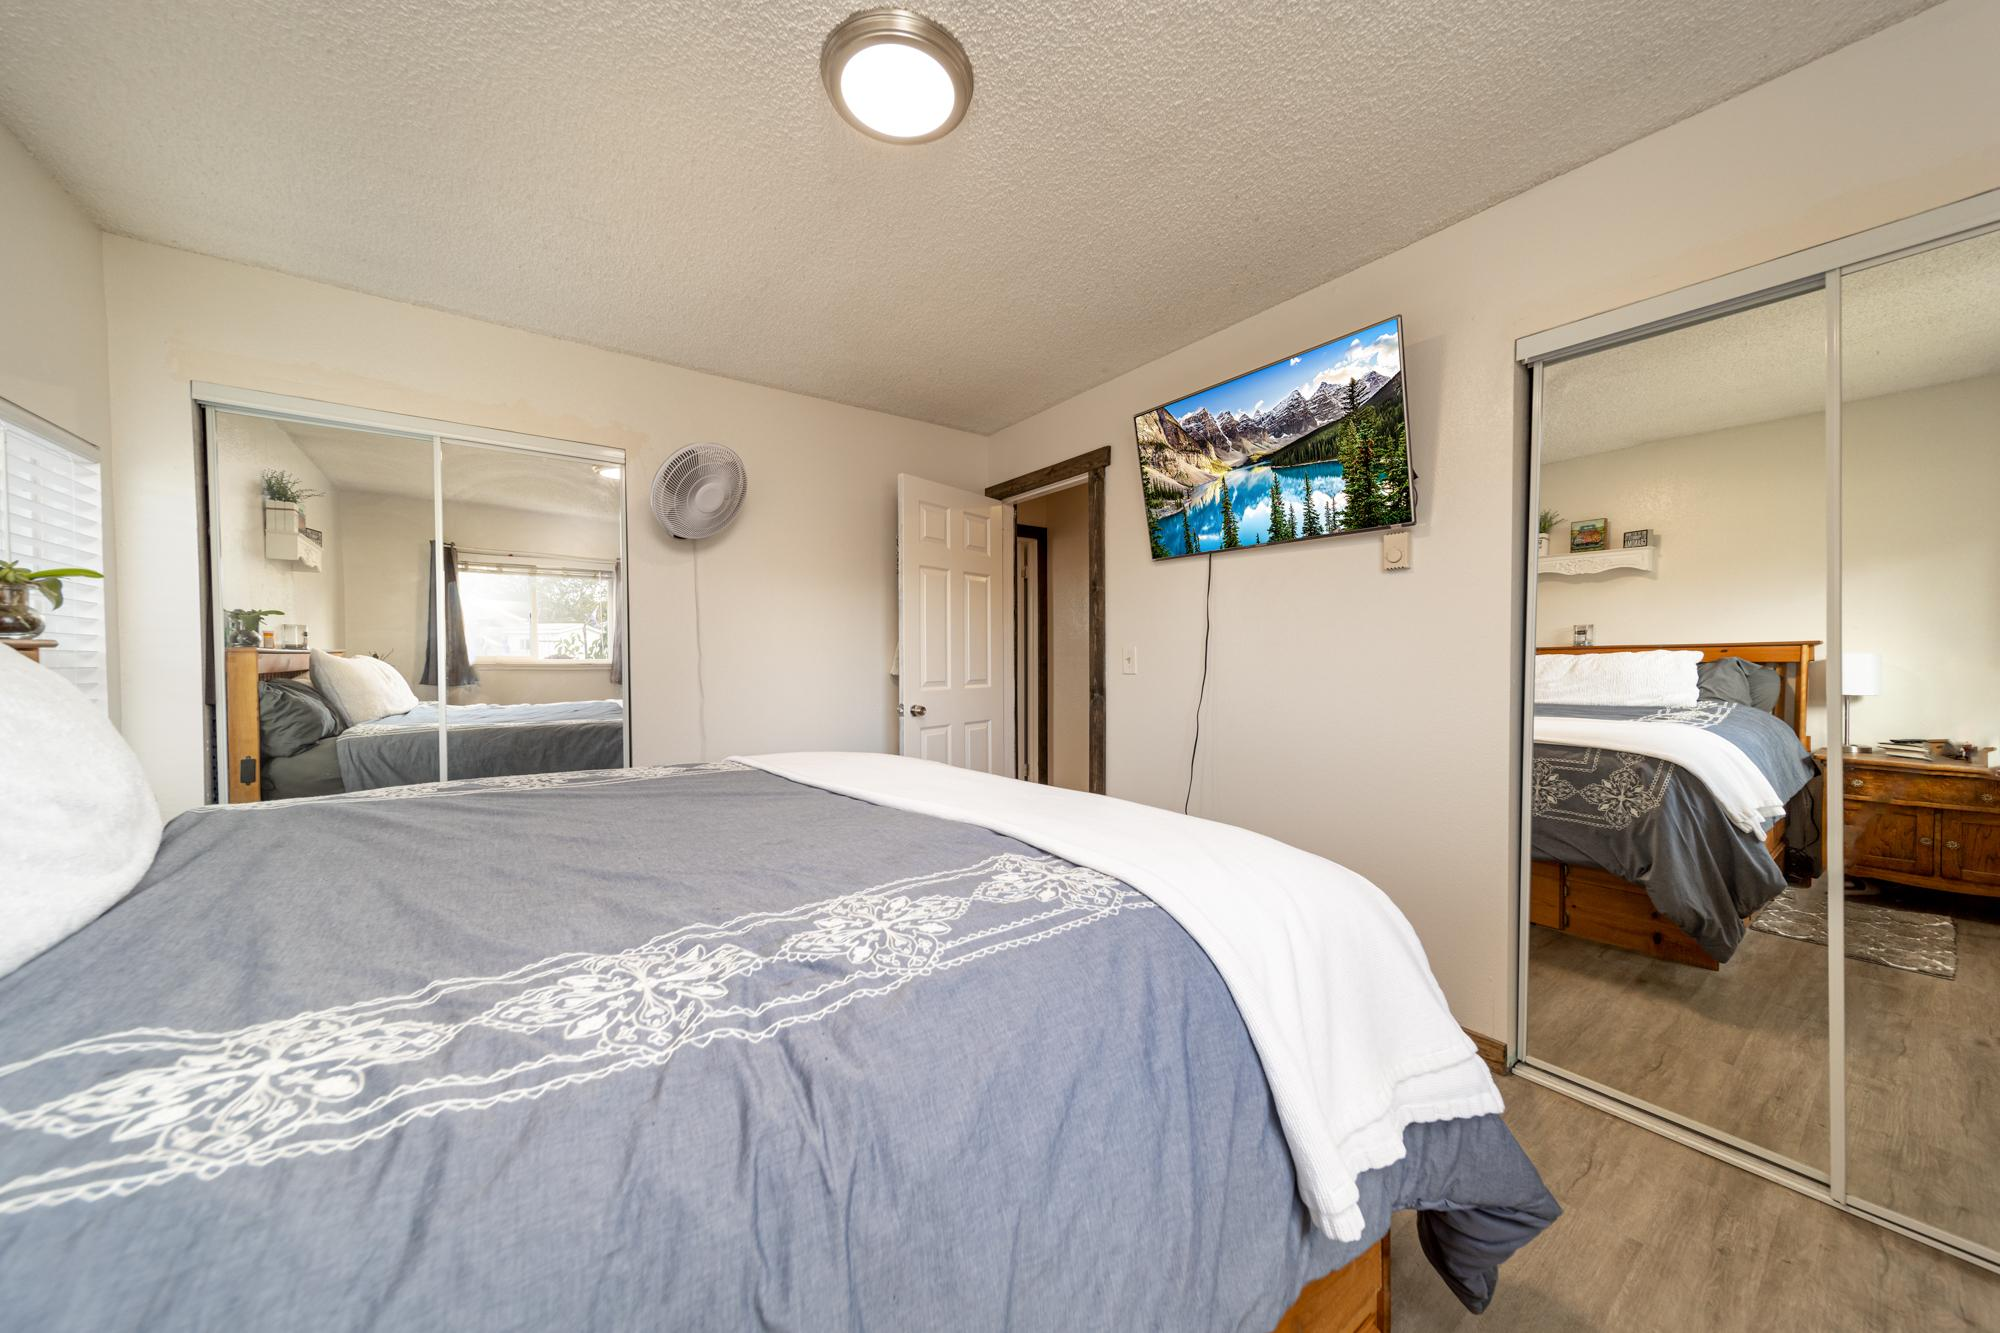 Main Bedroom with 2 Closets - 1117 Centennial Dr Montrose, CO 81401 - Atha Team Real Estate